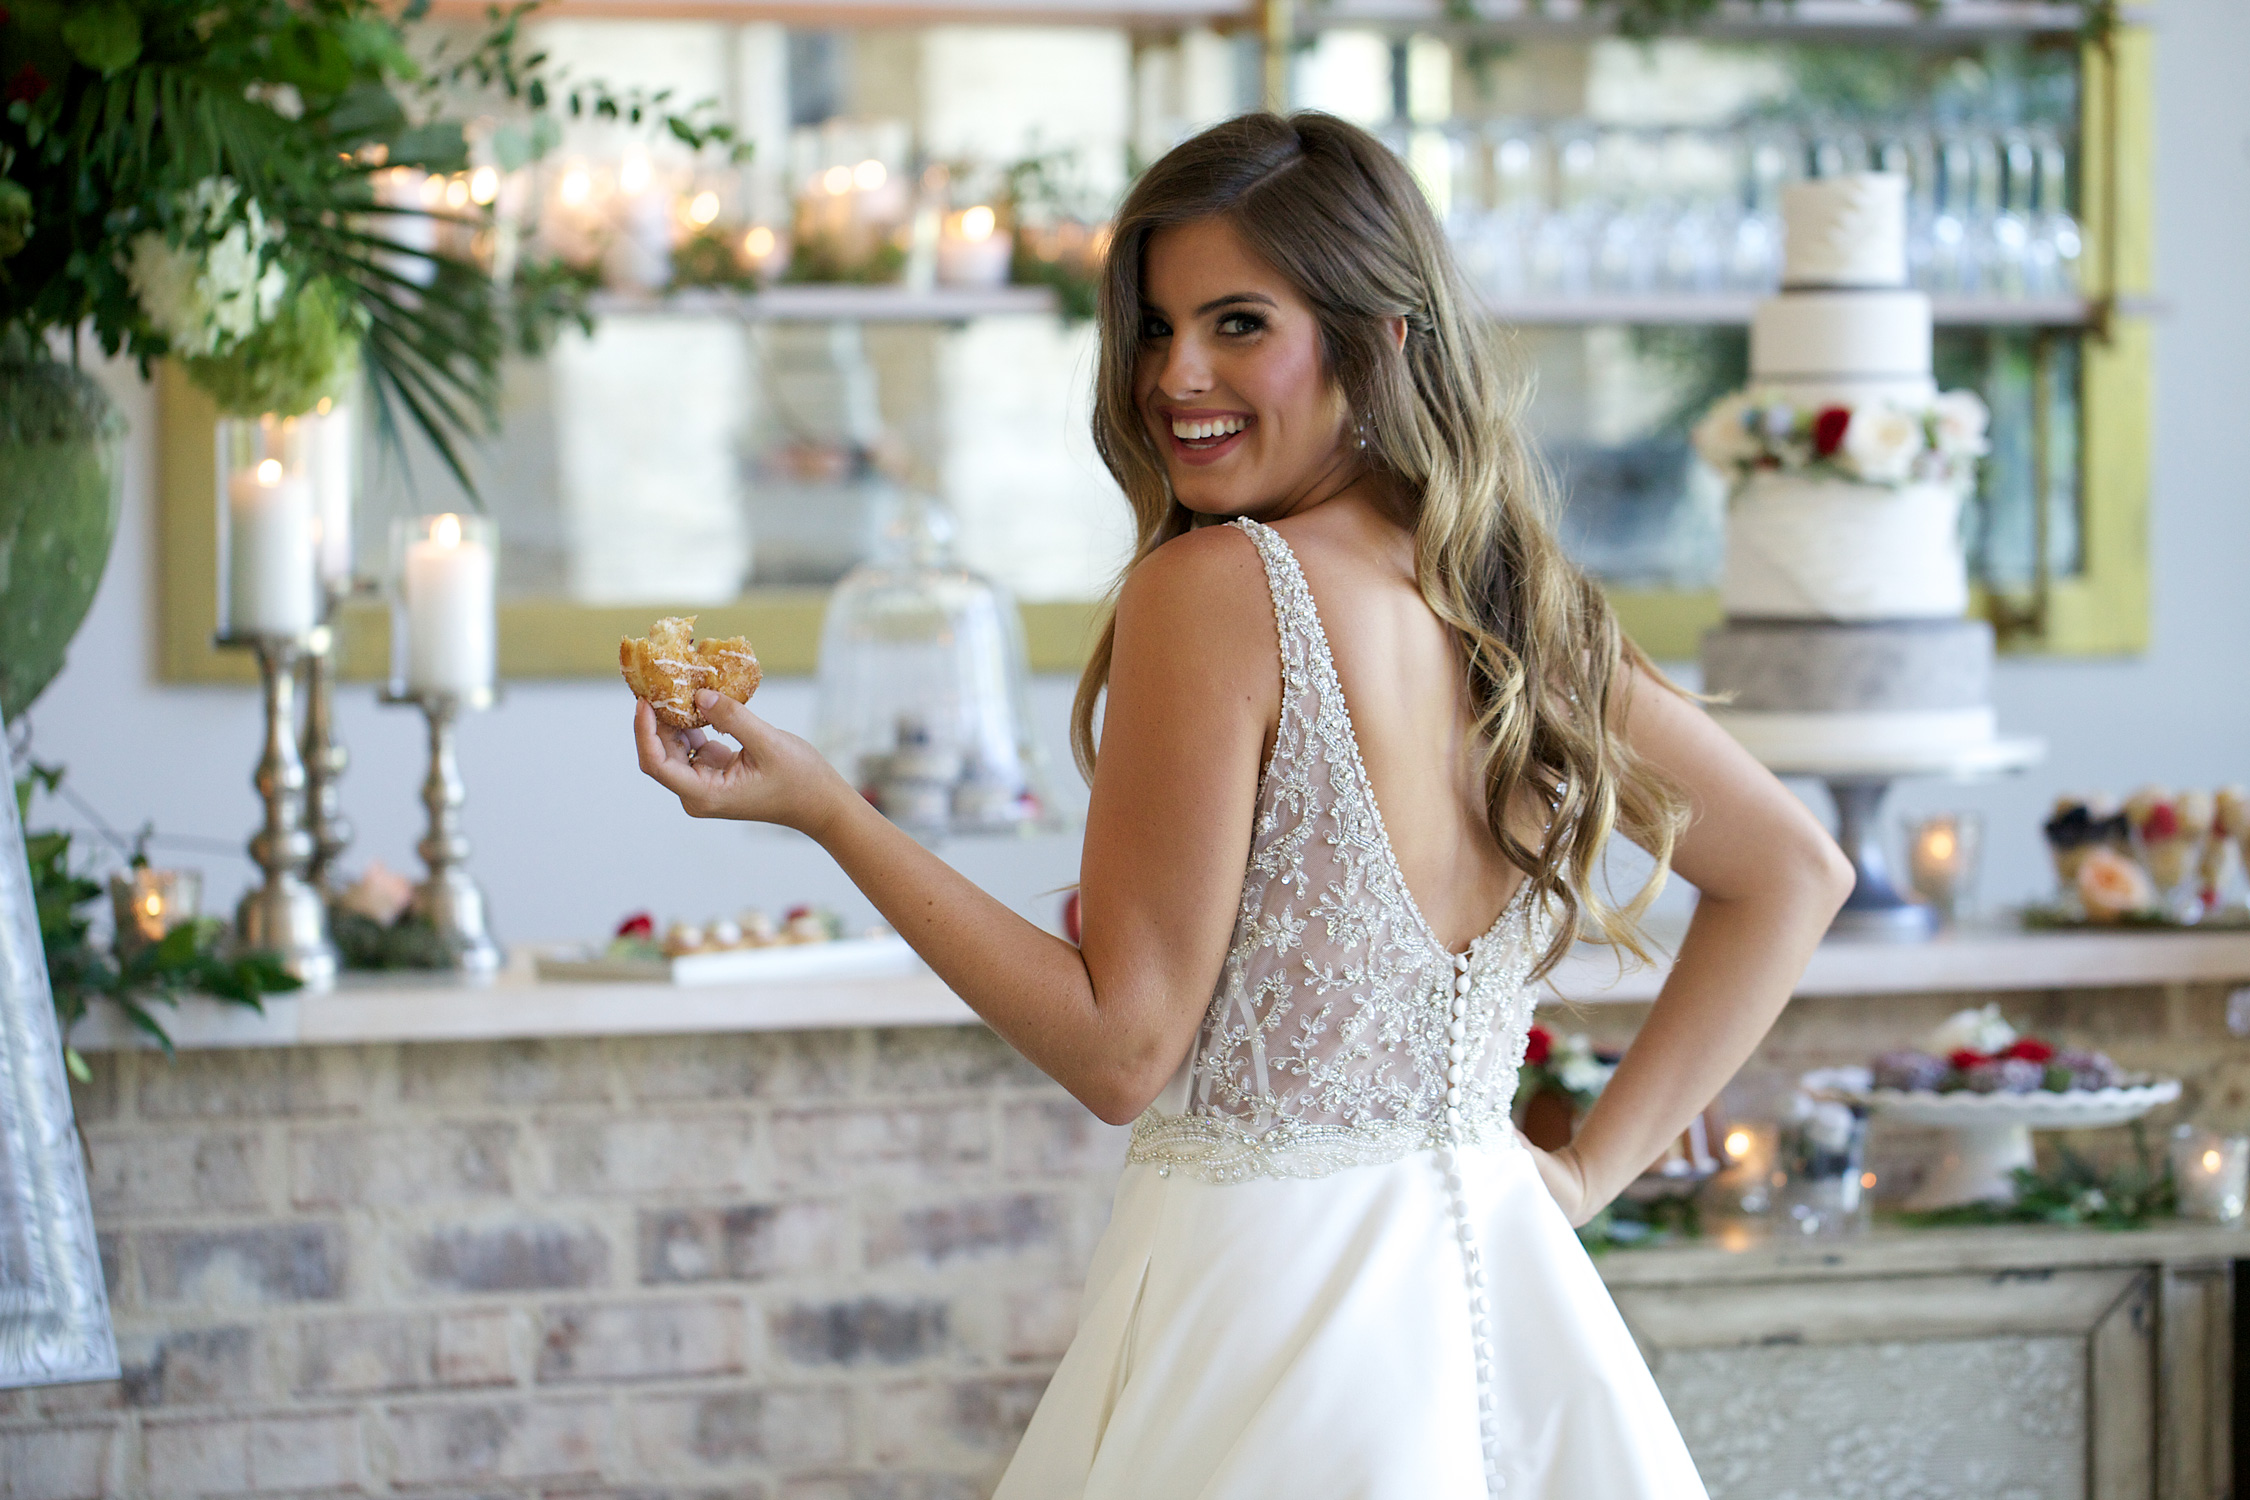 Focus On The Coast Wedding Shoot with Meraki Beauty with Makeup and Hair